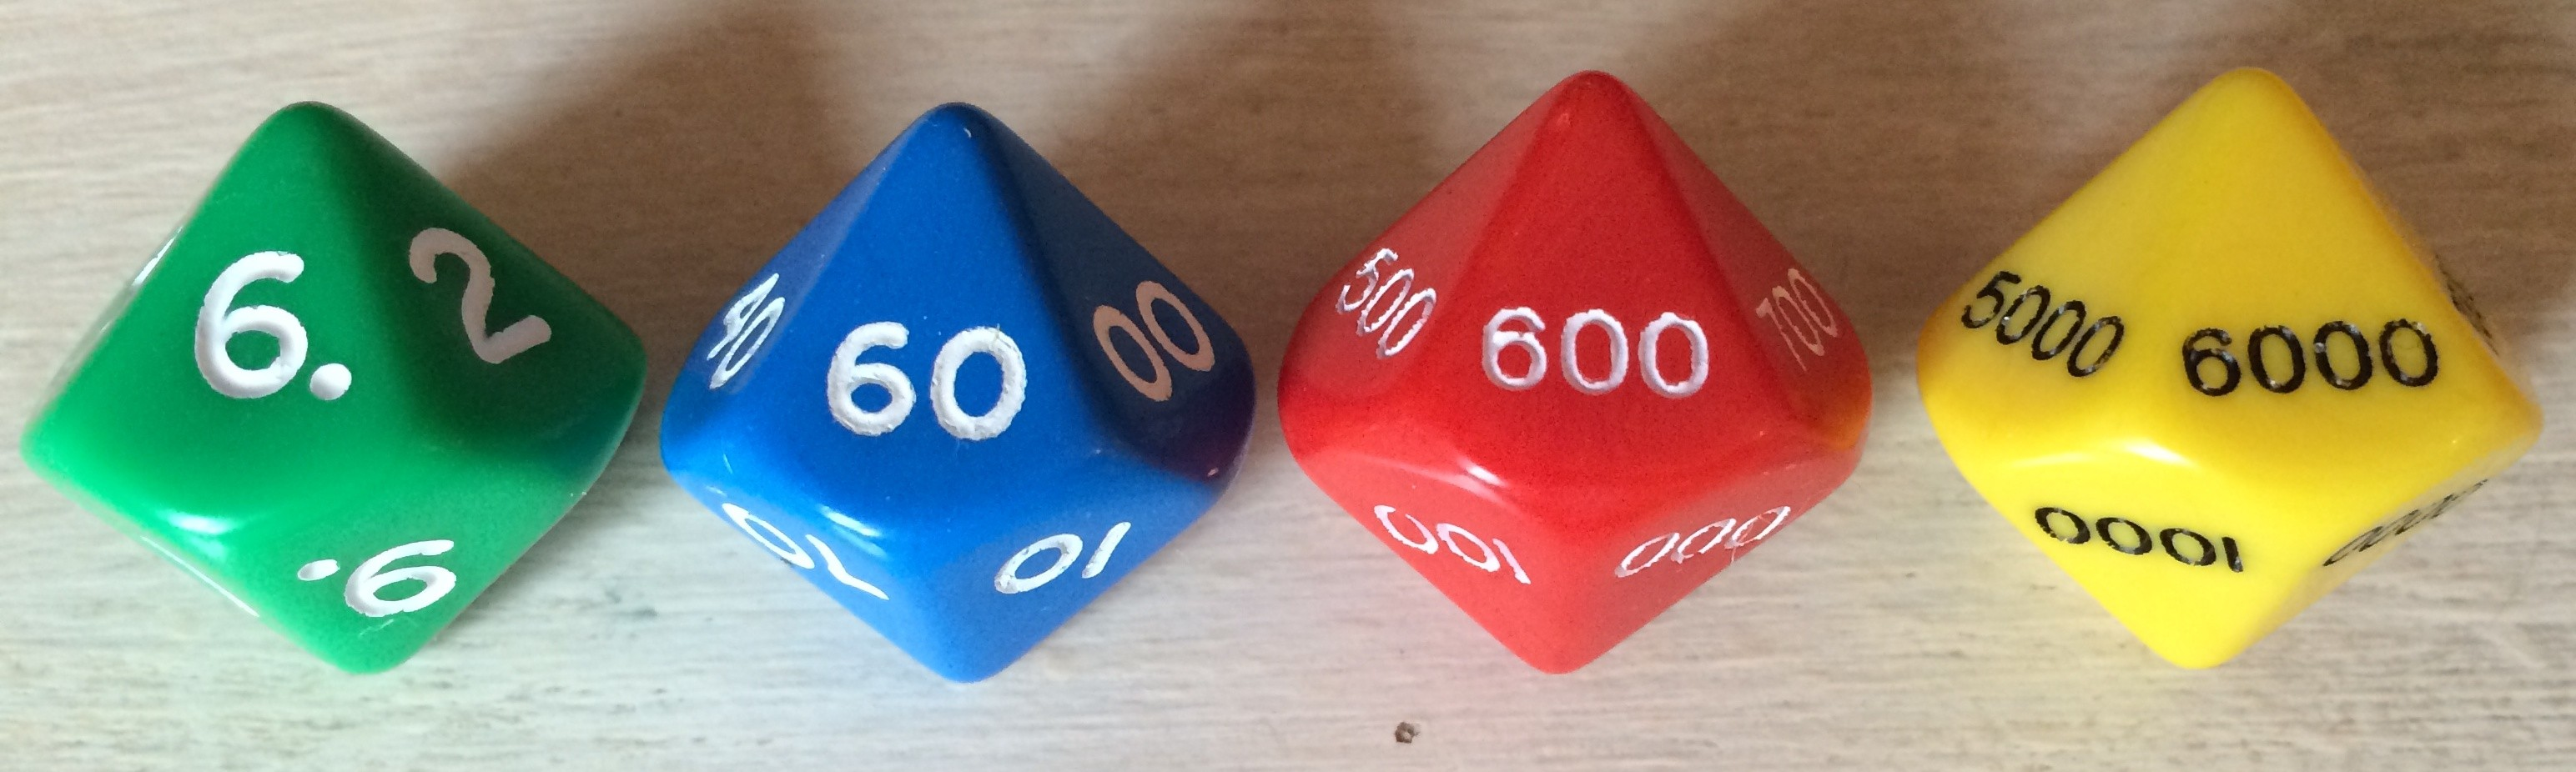 Set of 4 Place Value Dice